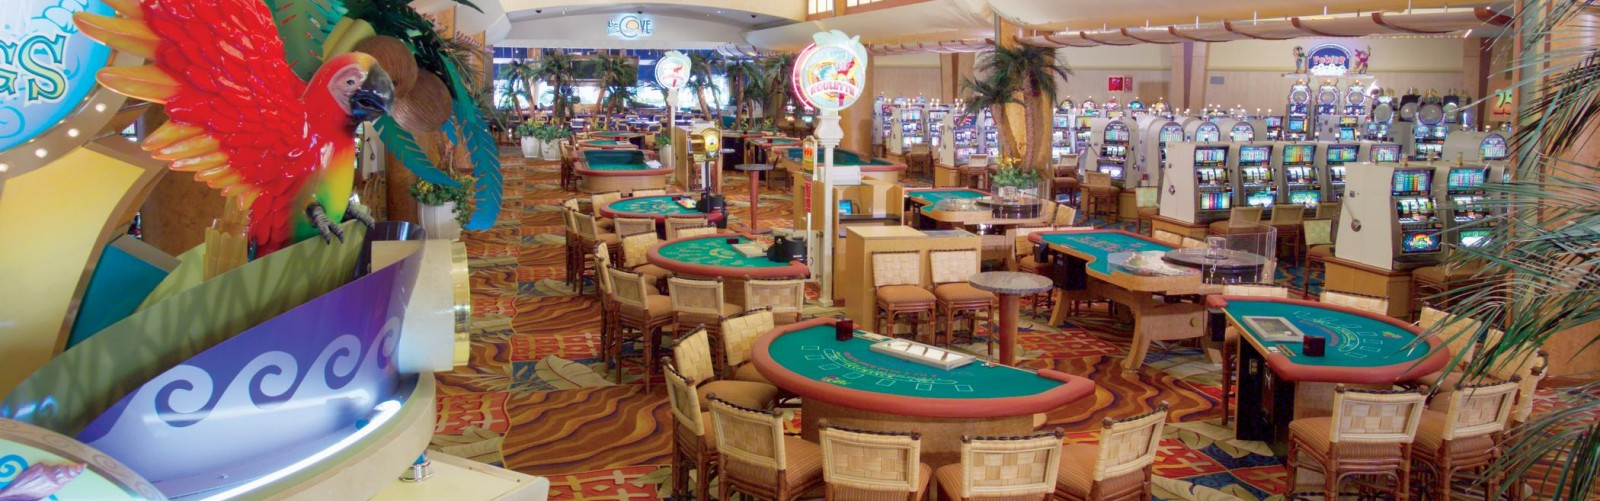 Casino grand bahamas new casinos in california